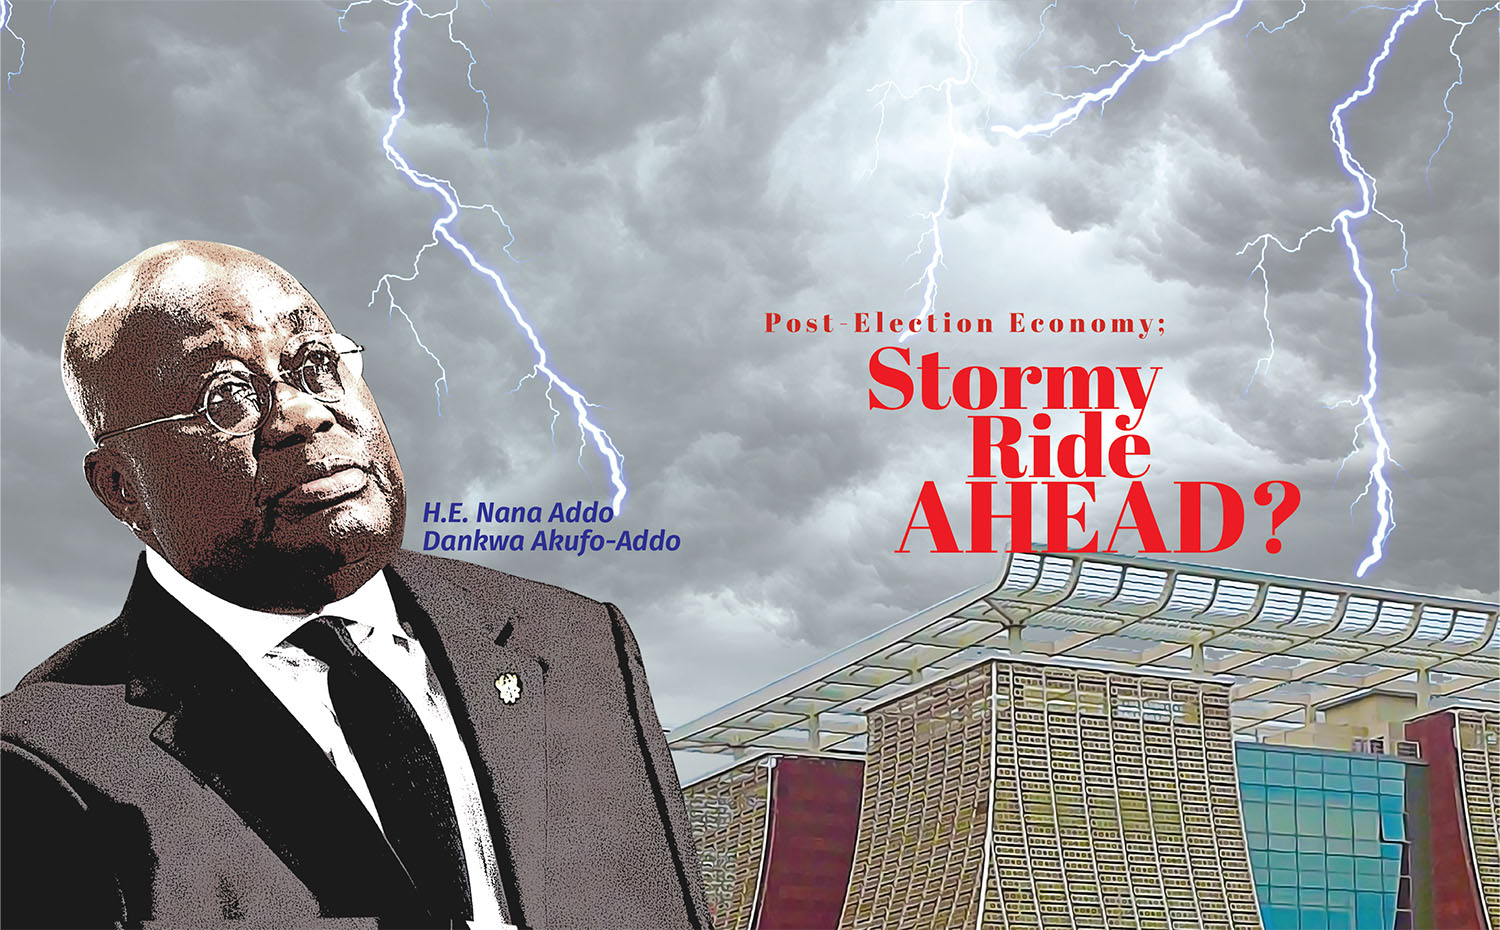 Post-election economy; Stormy ride ahead?